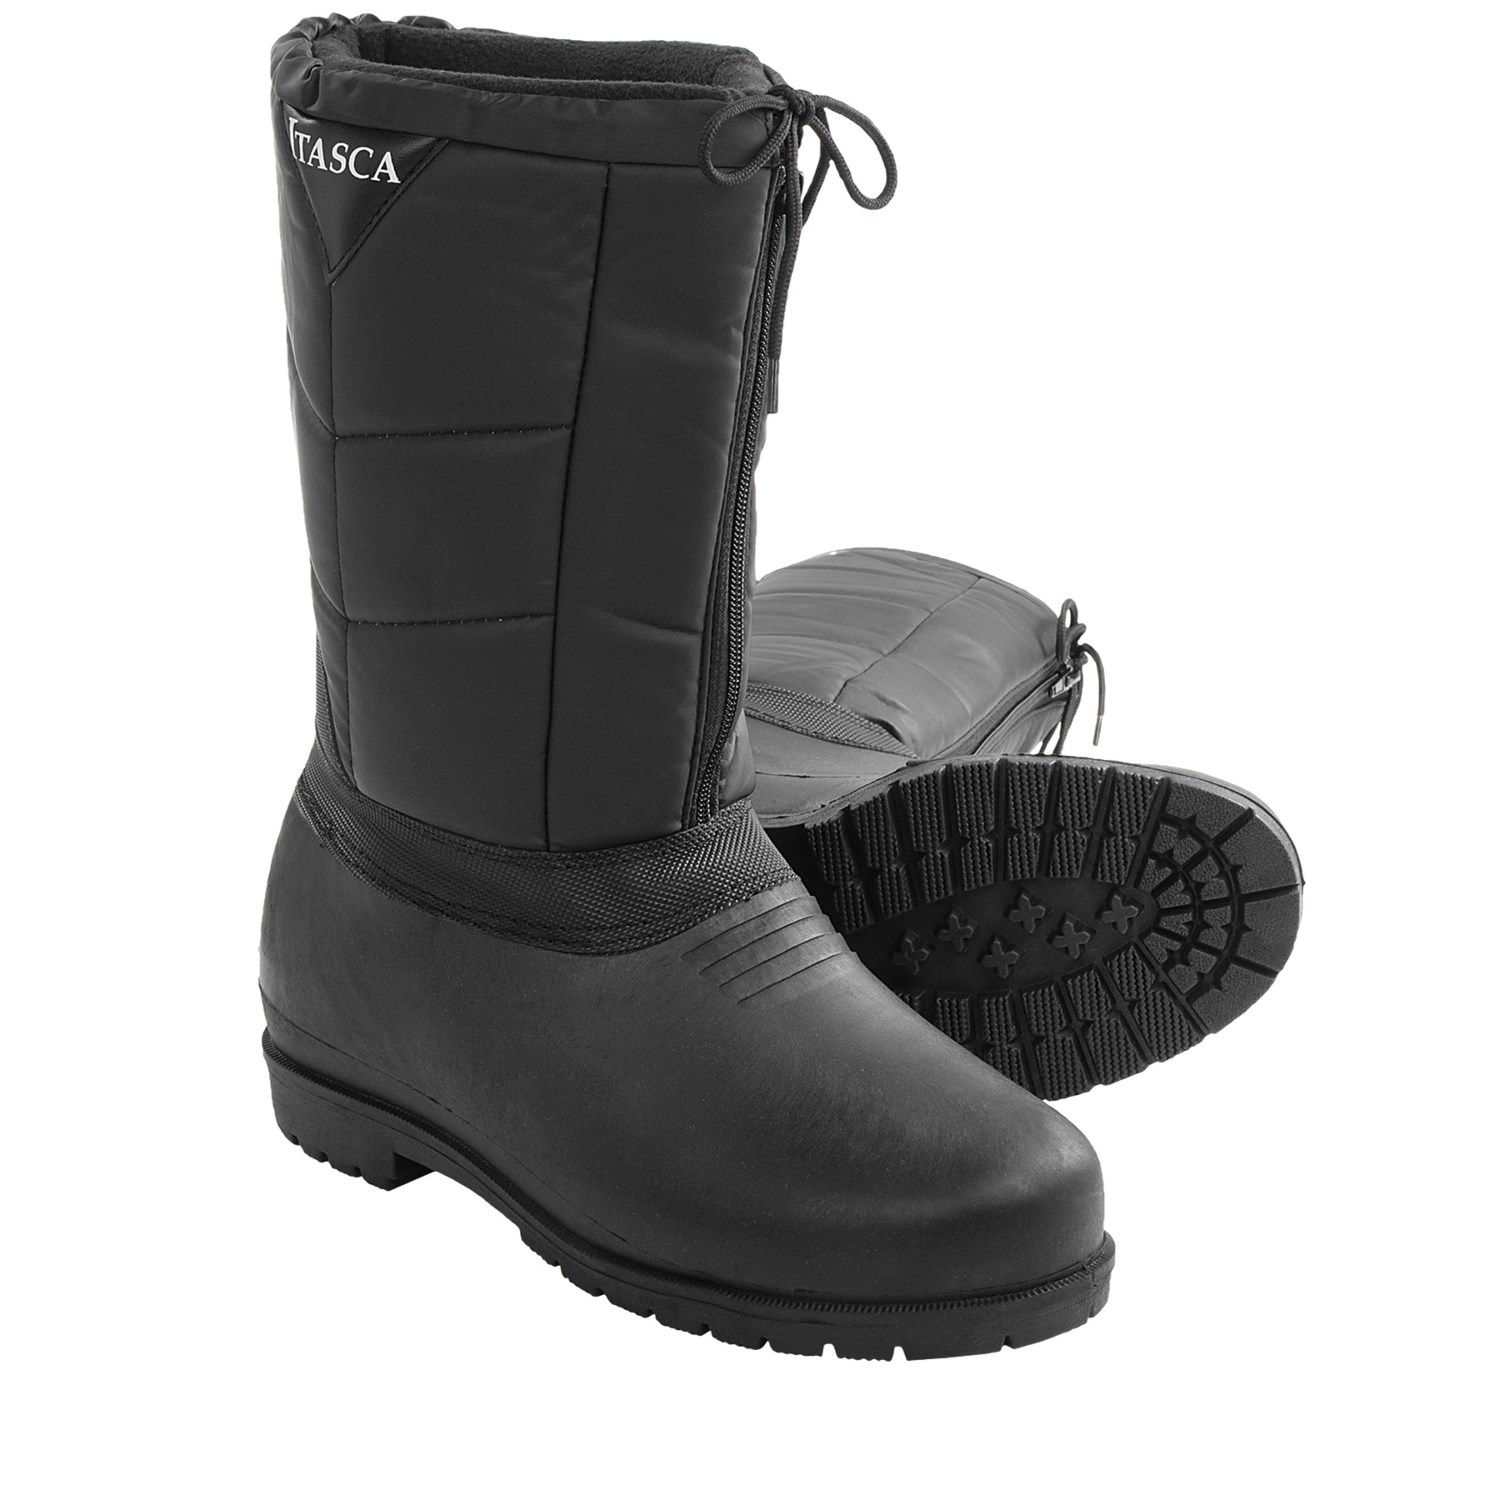 black single men in itasca Itasca boots men cancel itasca men's swampwalker tall black, size us 9 $ 14 99 itasca men's ketchikan winter thermal reflective felt liner snow boot.